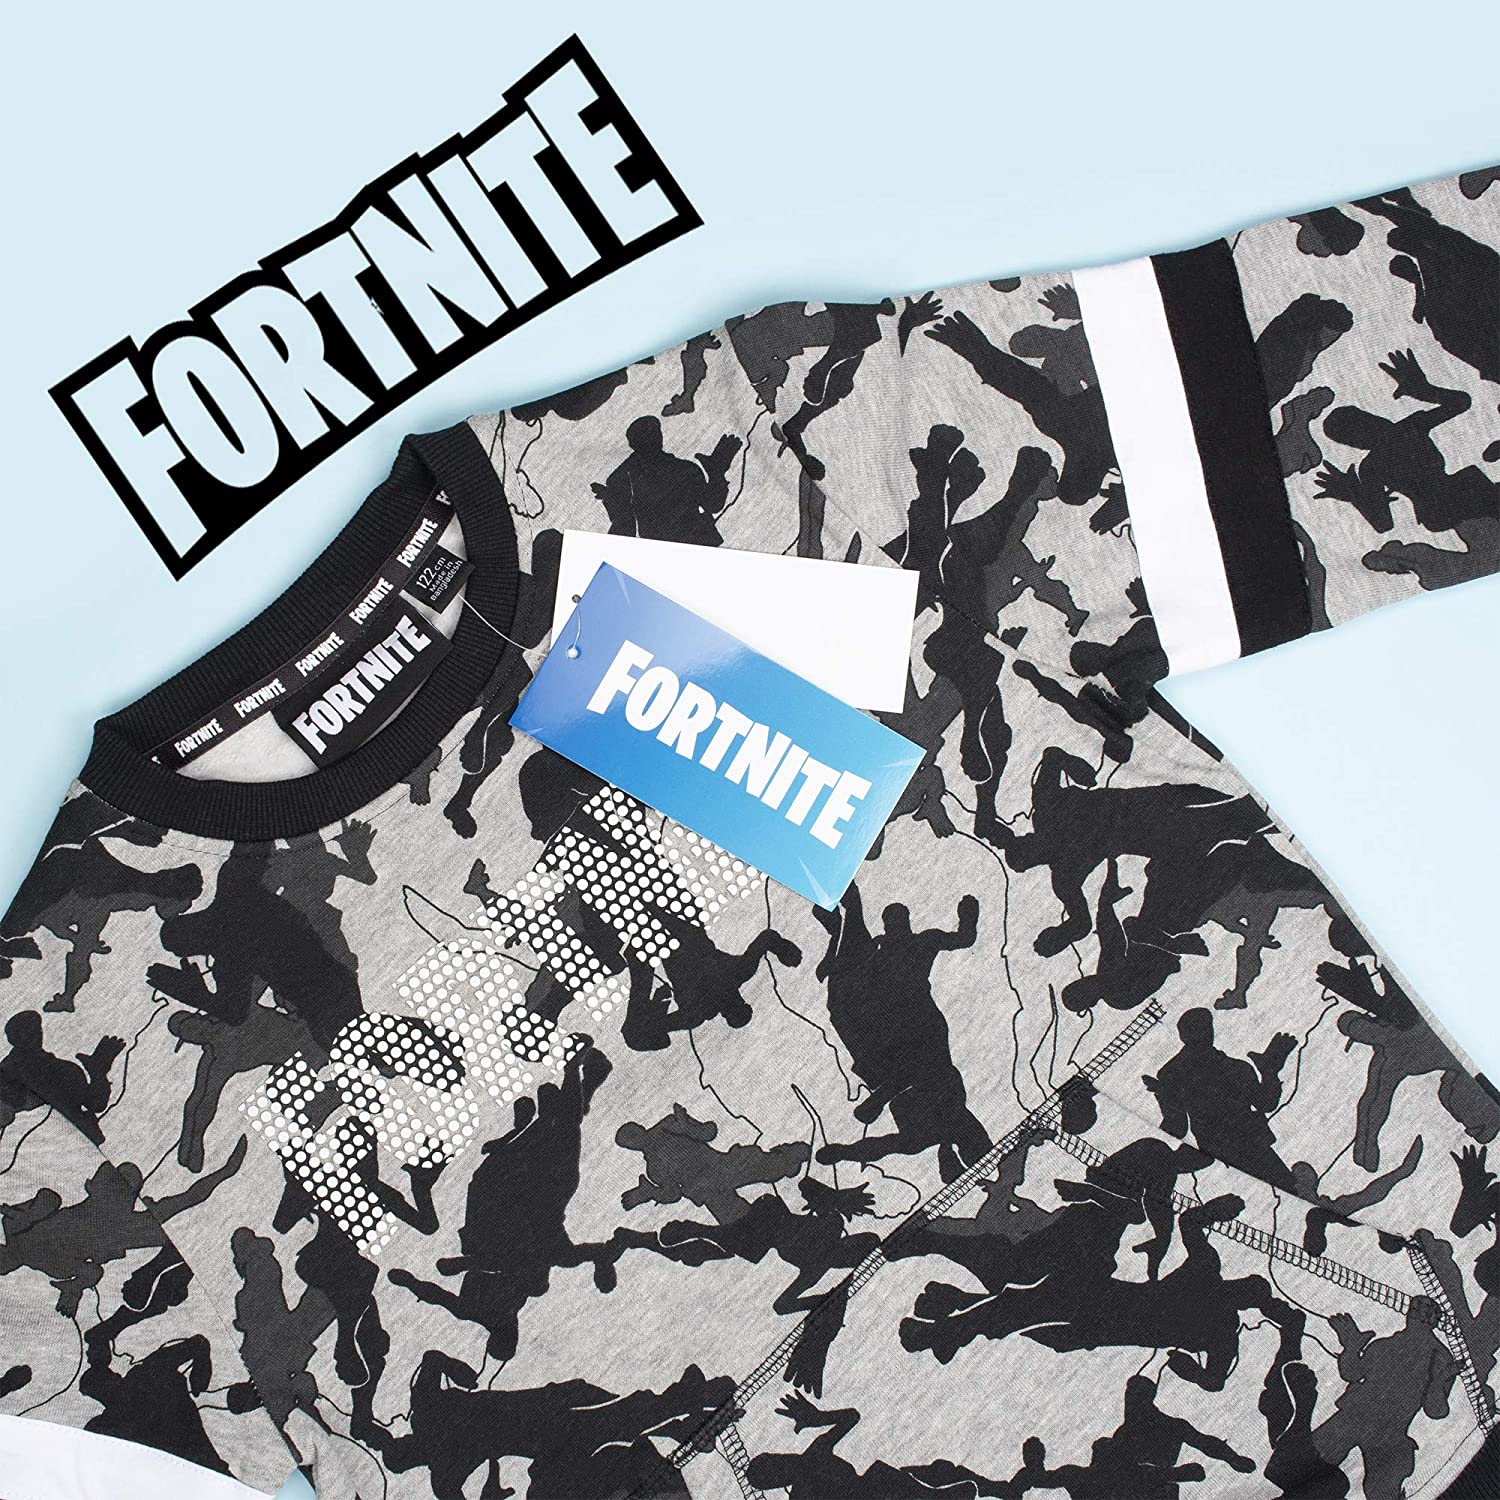 Epic games Fortnite Sweatshirt for Boys Long Sleeve Jumper Pullover for Gamers Age 6-15